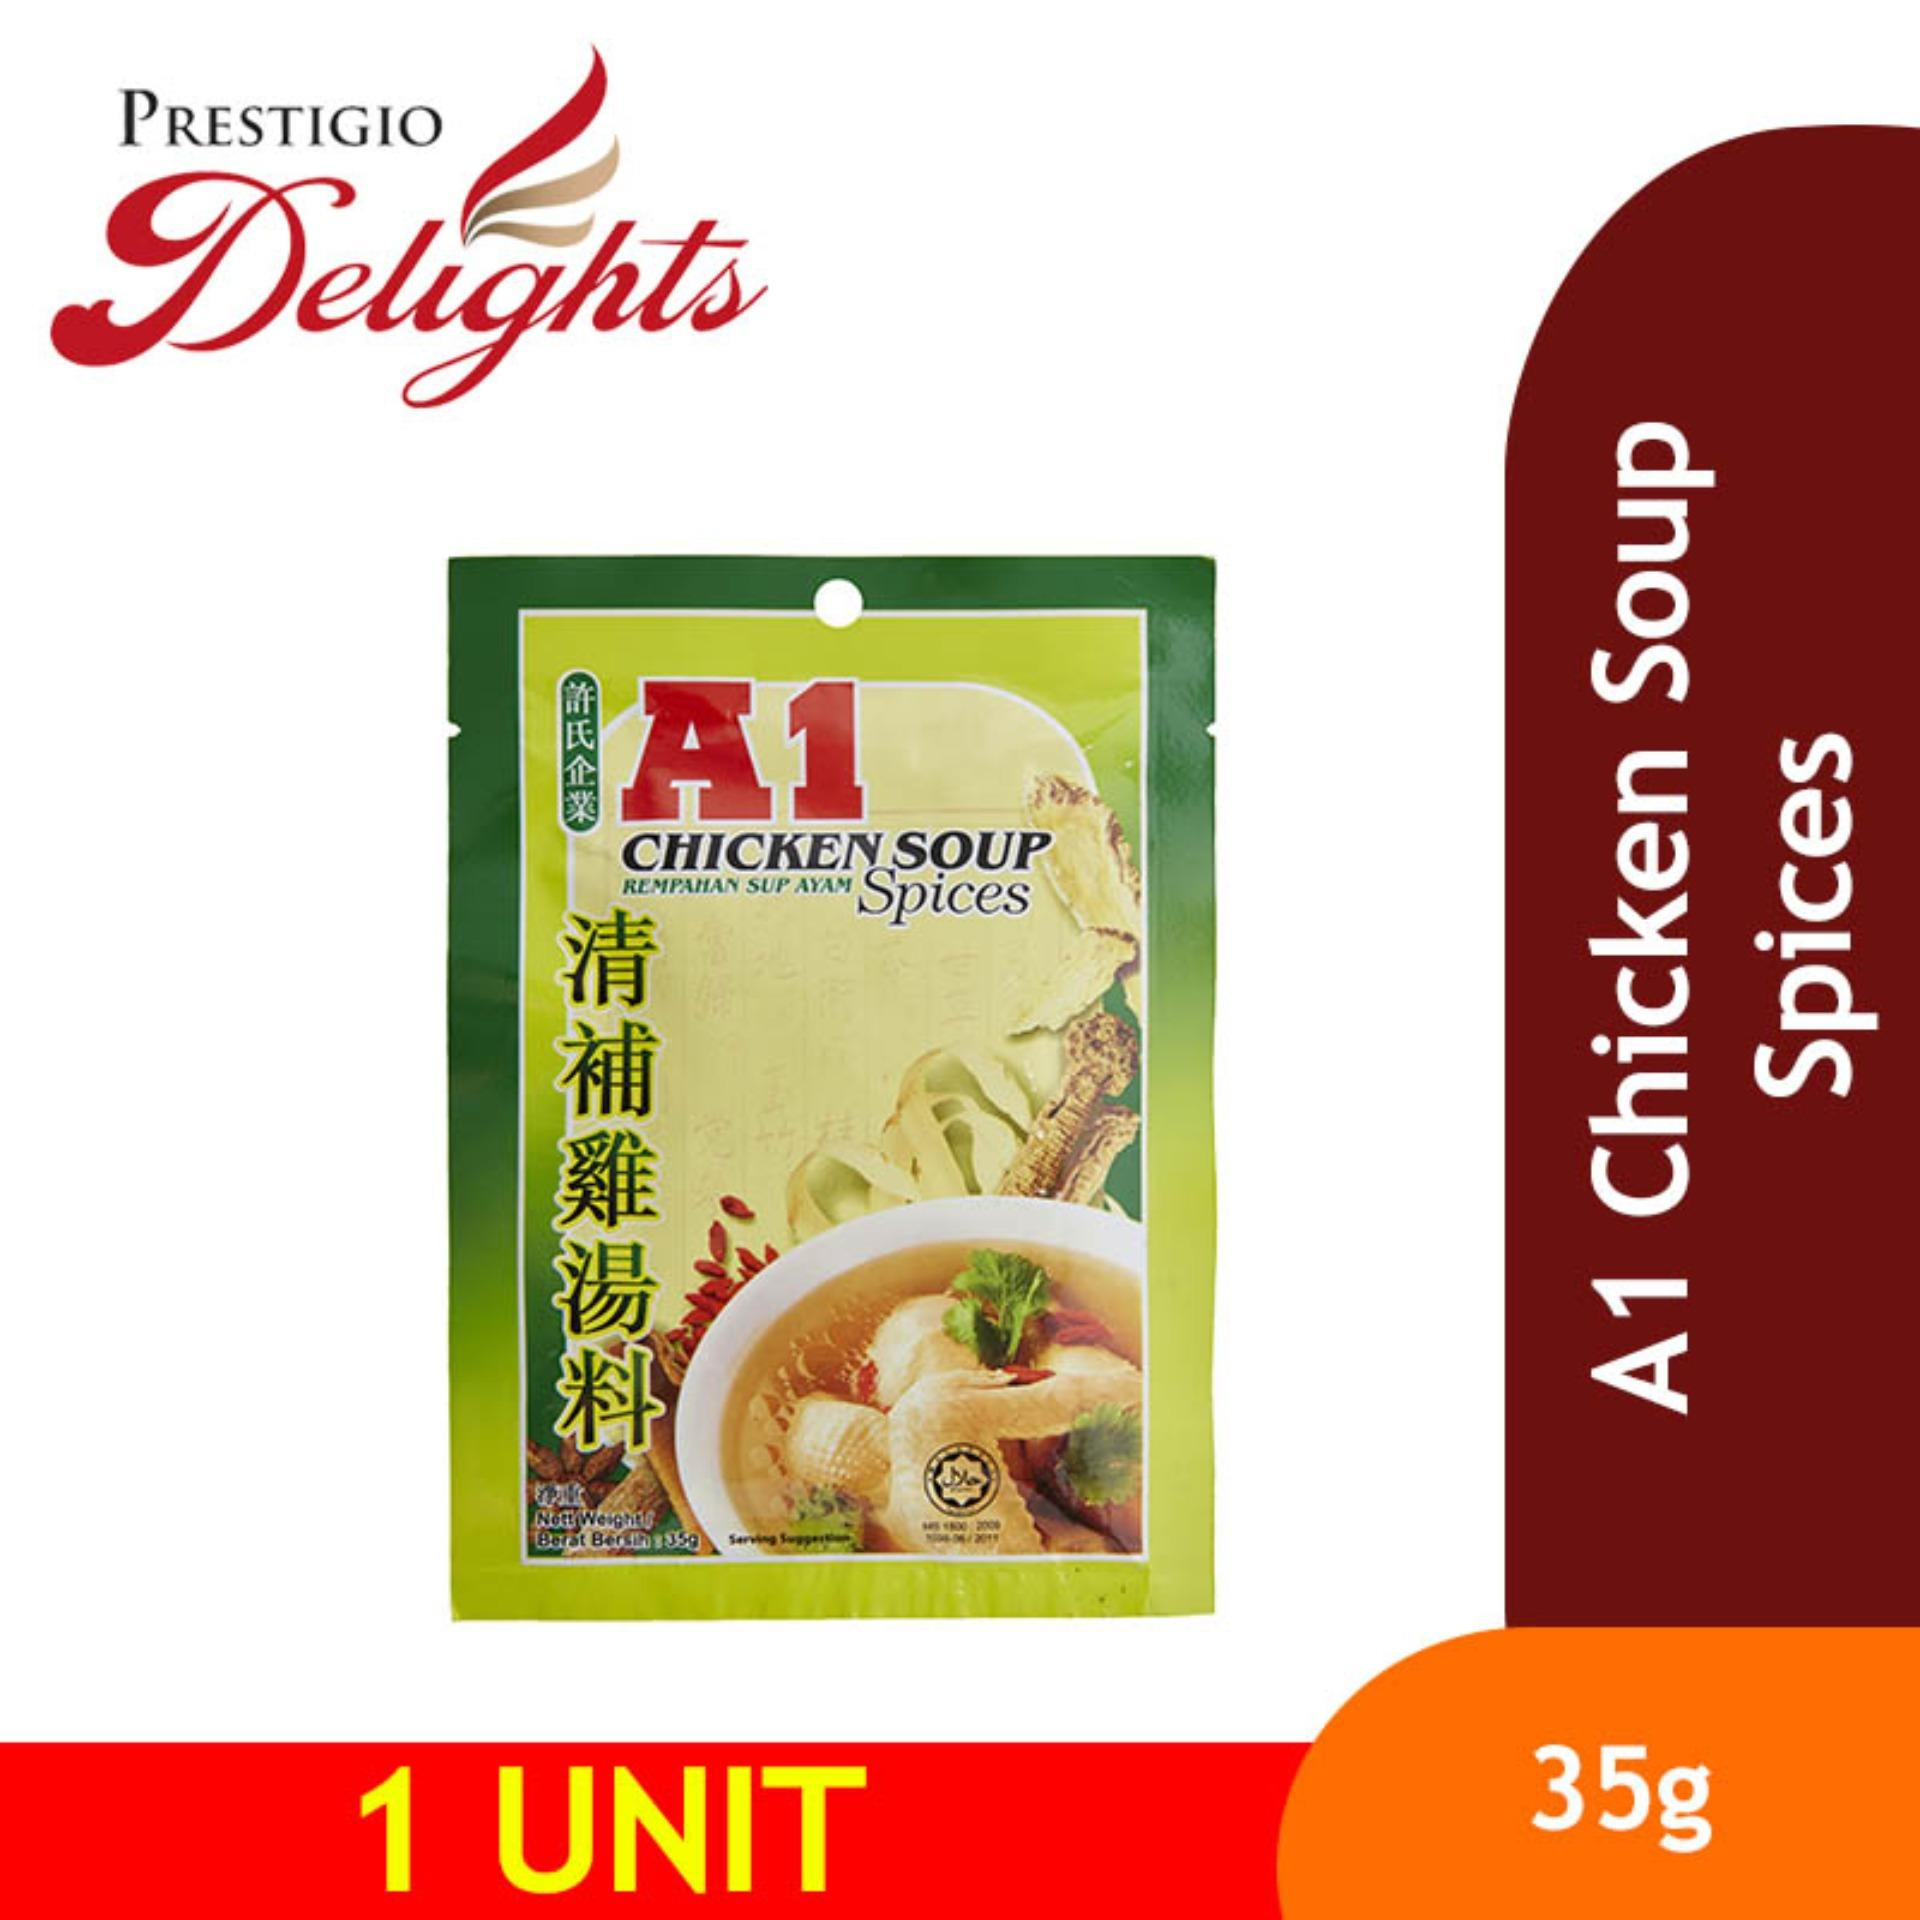 A1 Chicken Soup Spices 35g By Prestigio Delights.